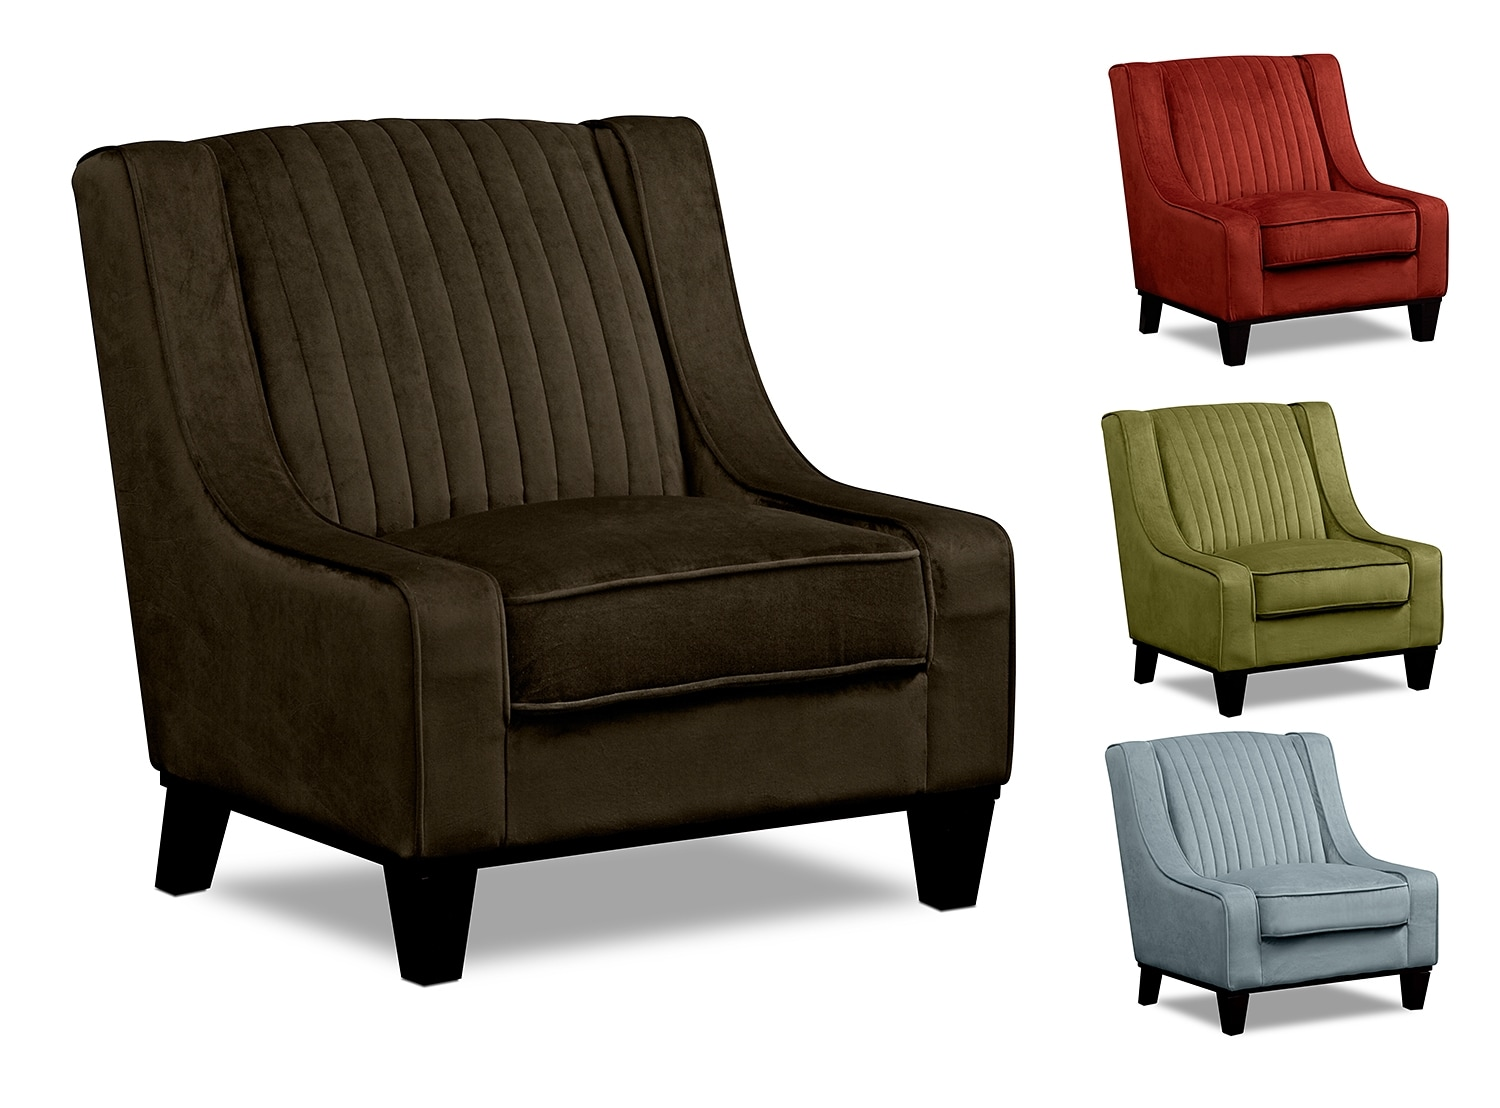 Living Room Furniture - The Whitley Collection - Accent Chair